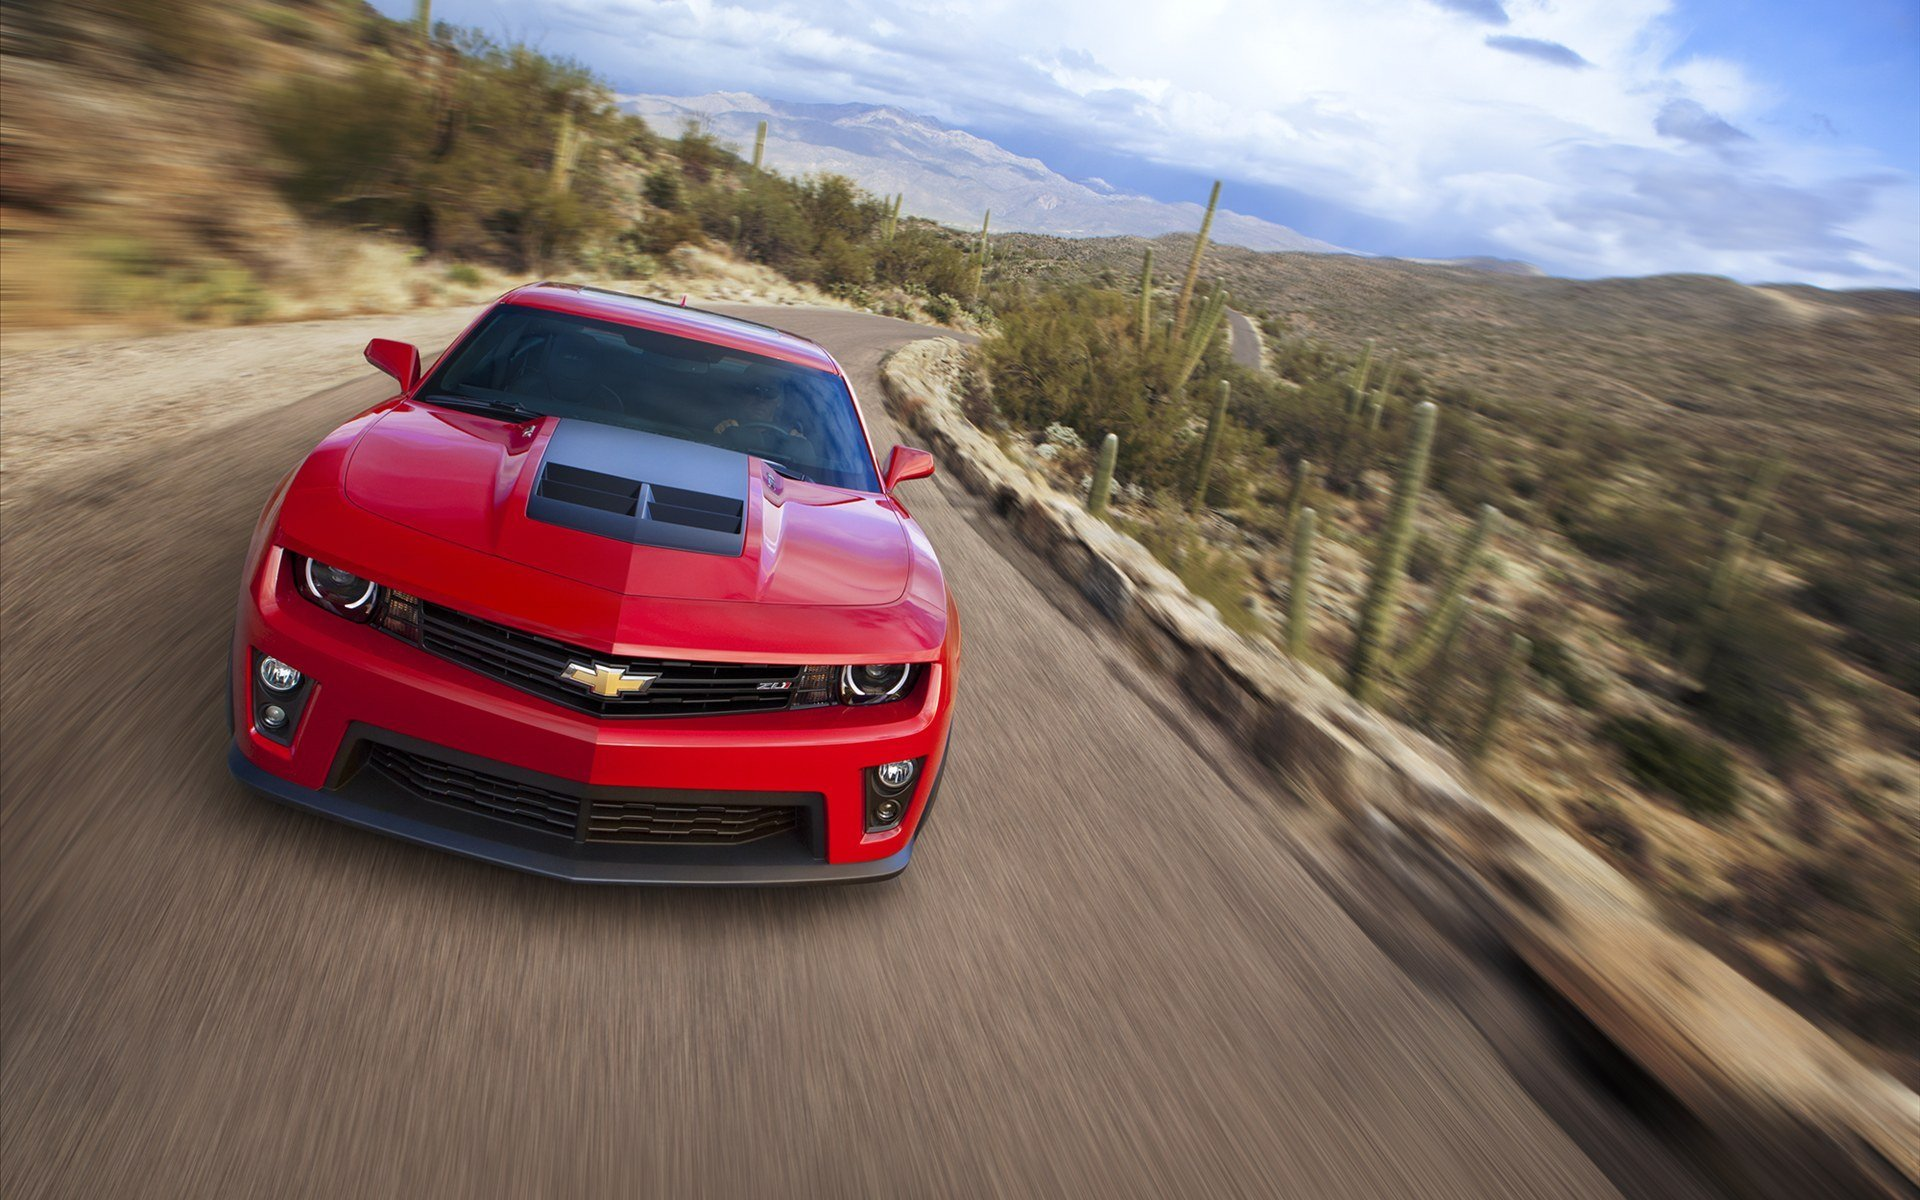 Chevrolet Camaro Zl1 wallpapers HD   344184 1920x1200